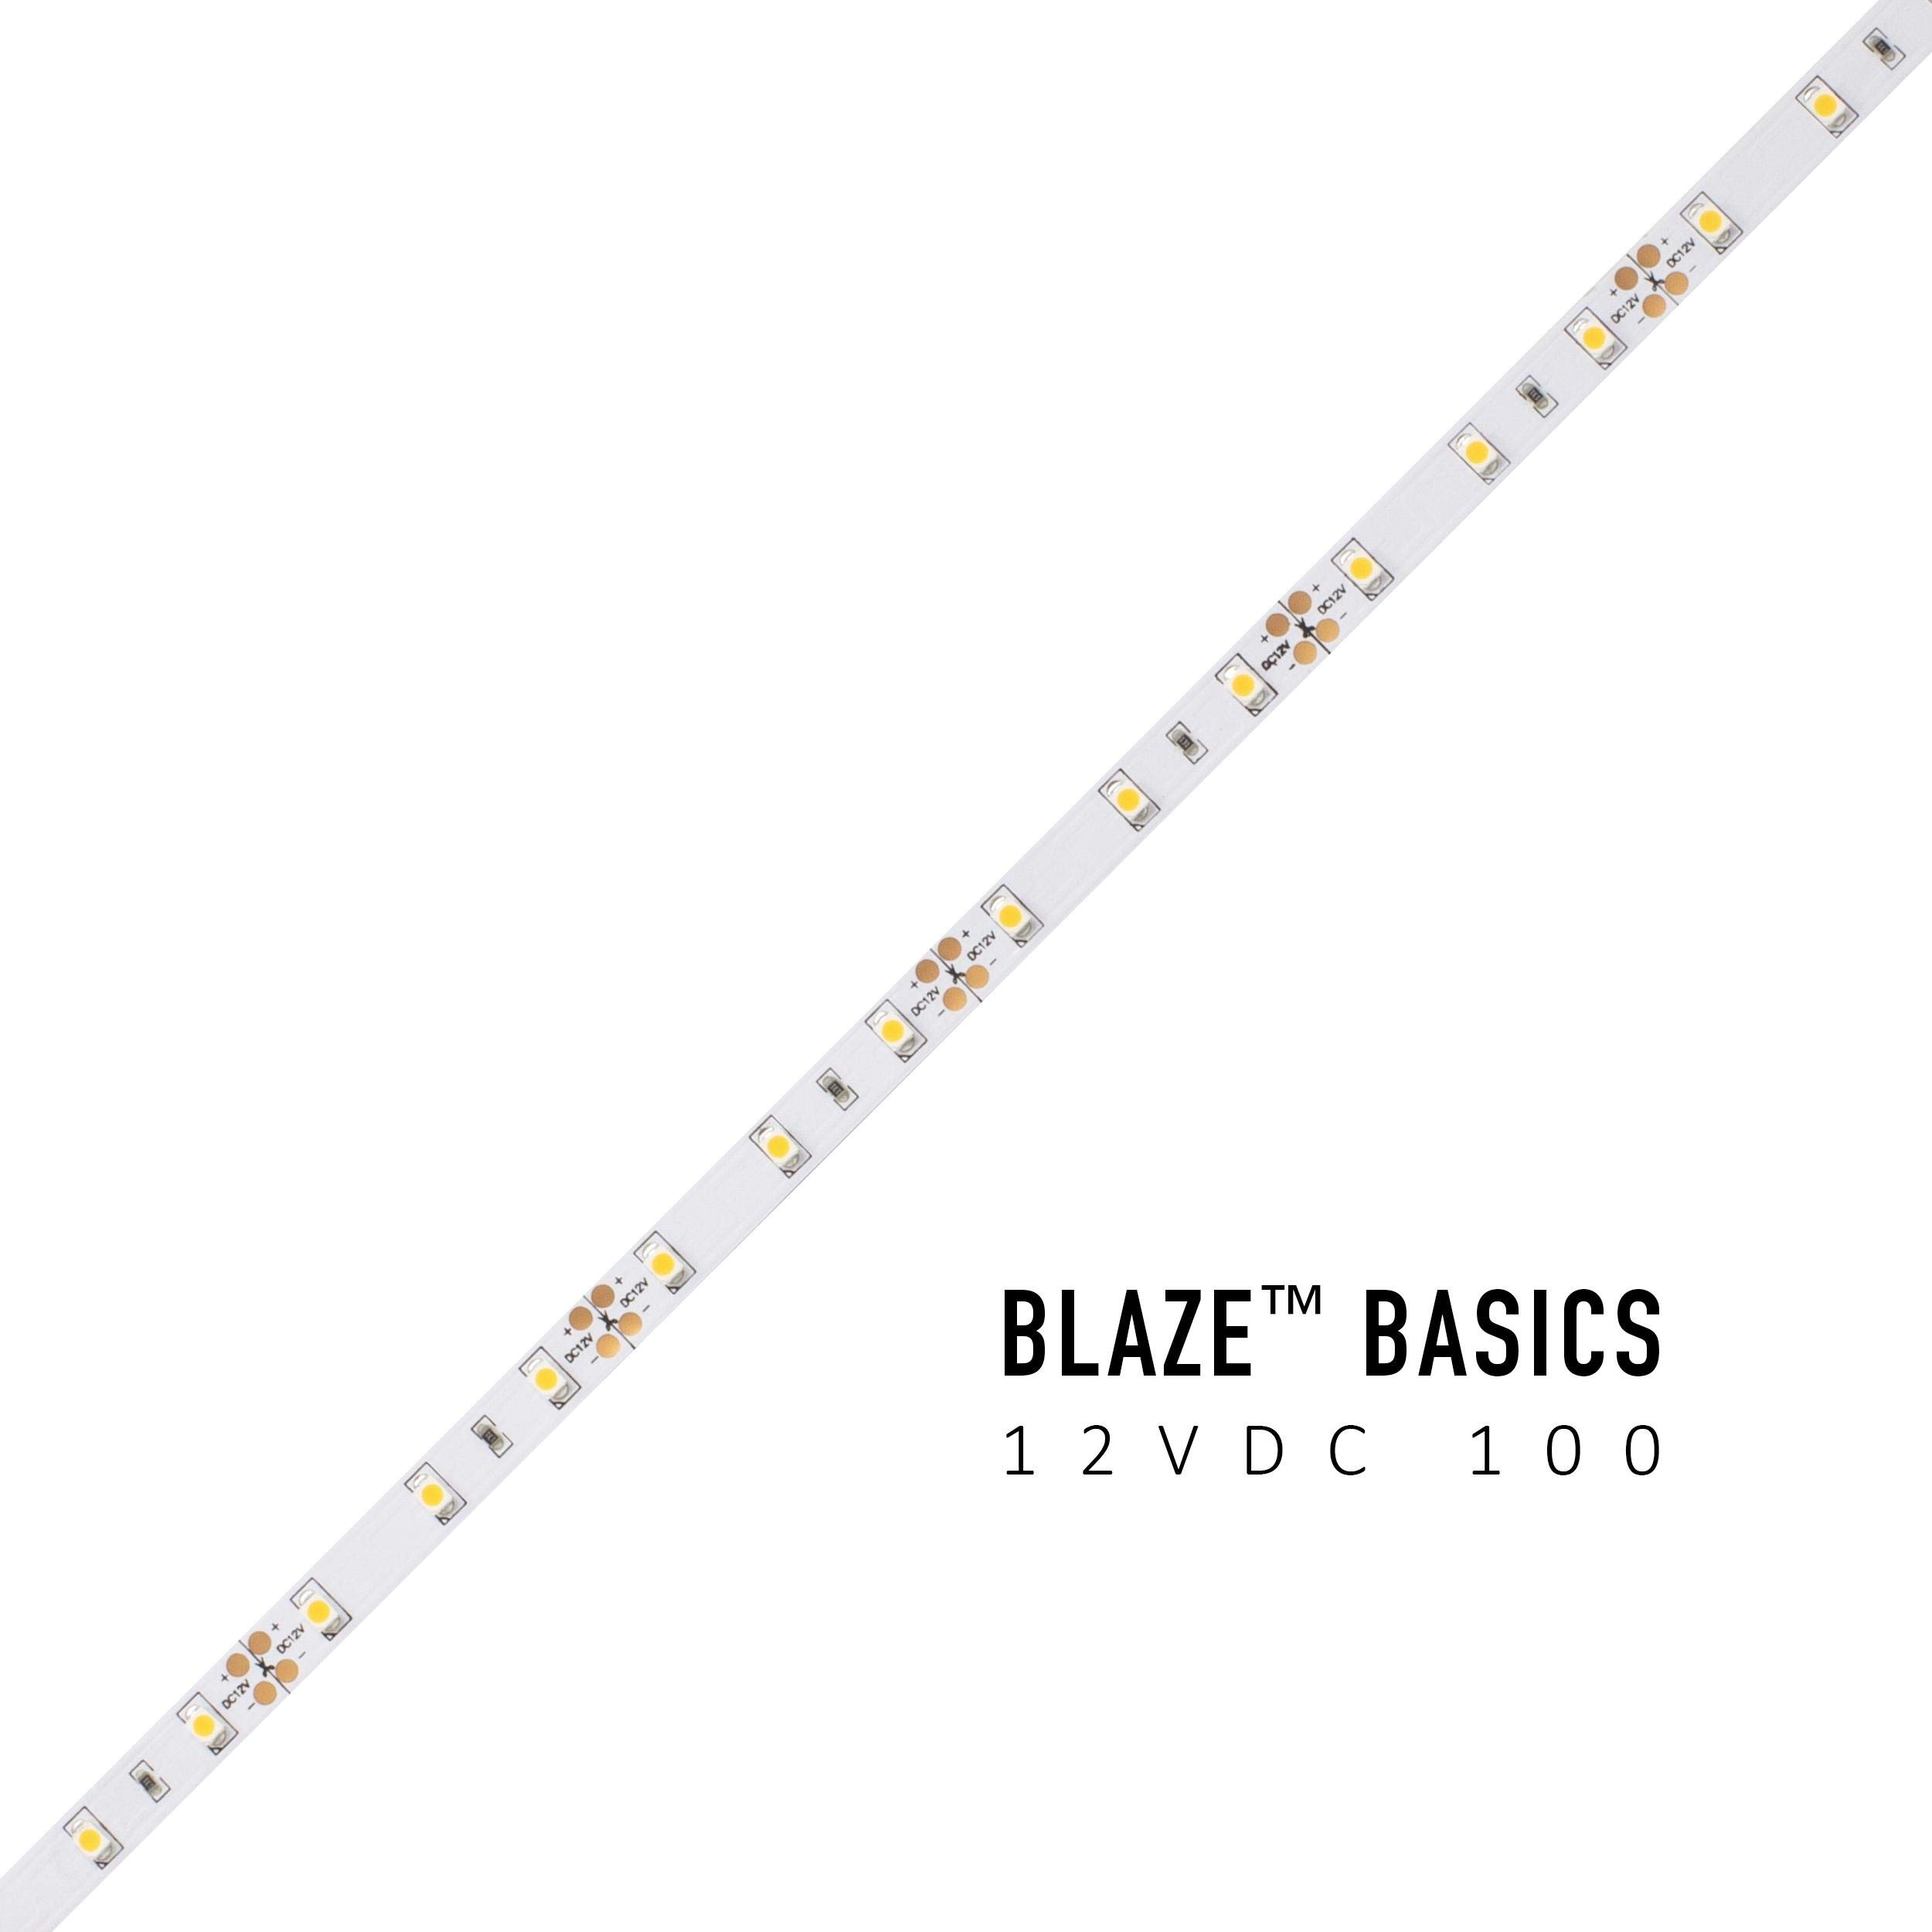 Diode LED Blaze Basics 100 LED Tape Light 12V 2700K 16.4ft Spool 1.46w/ft